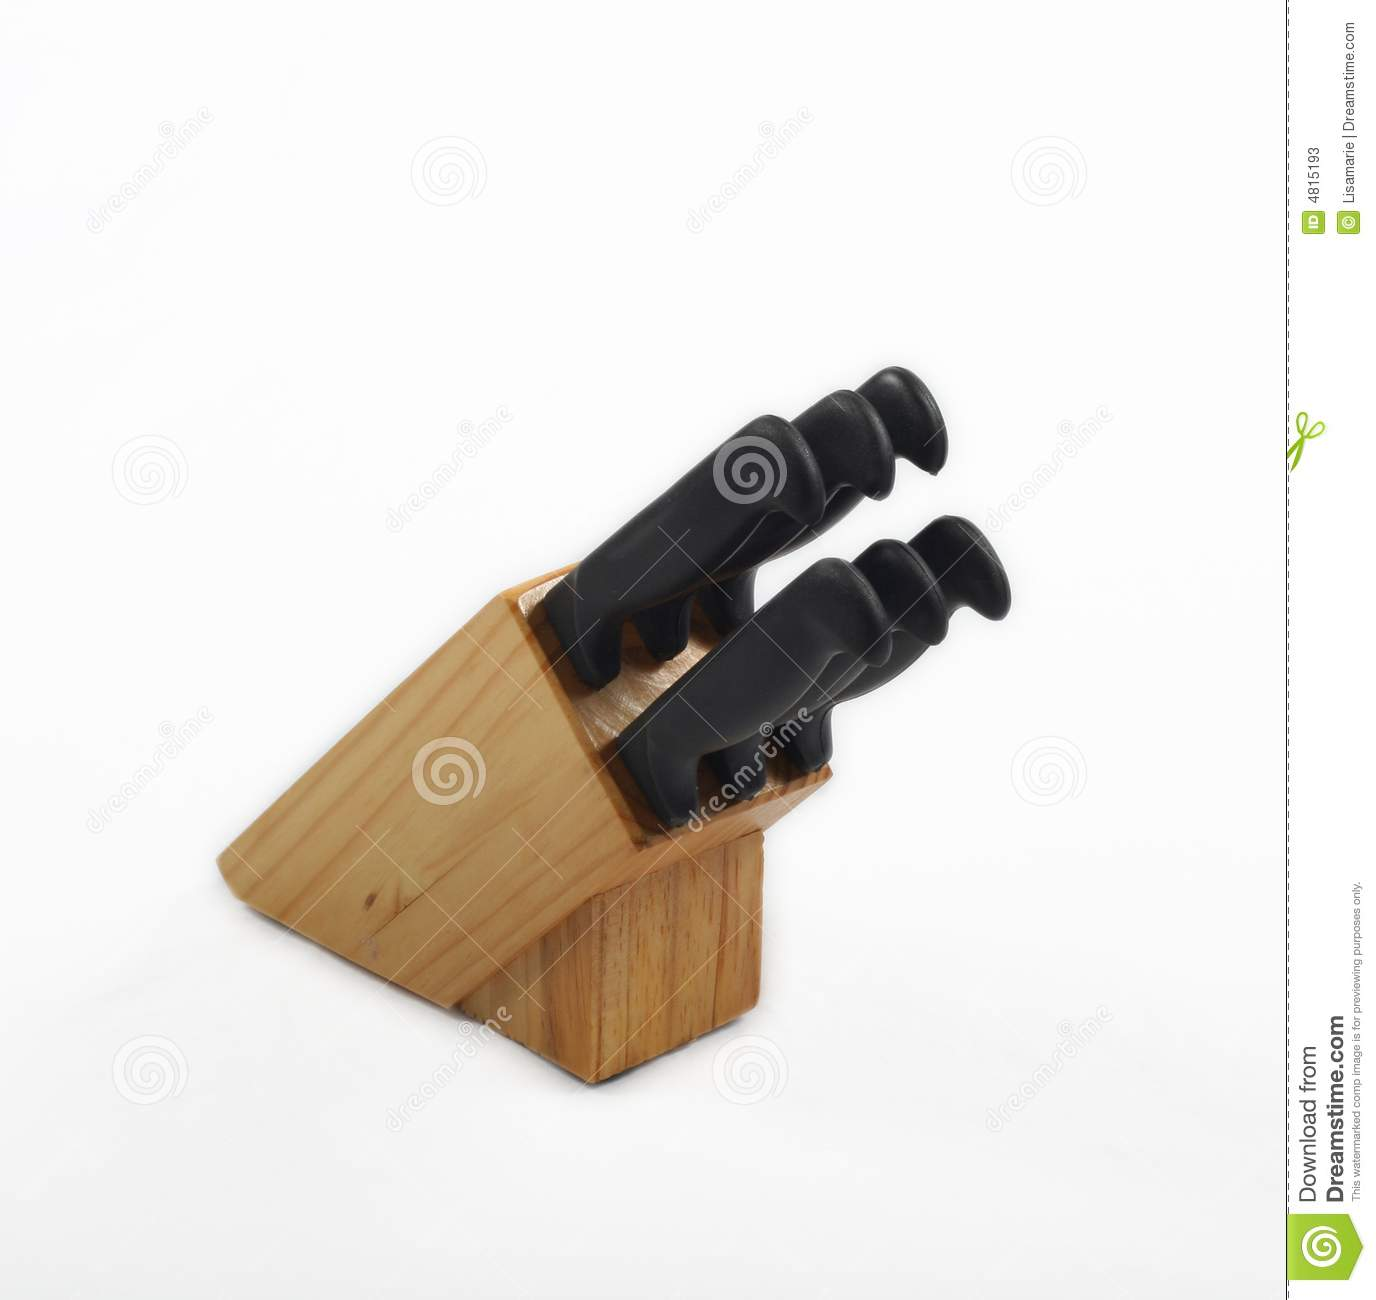 Knife Block And Knives Stock Photos - Image: 4815193